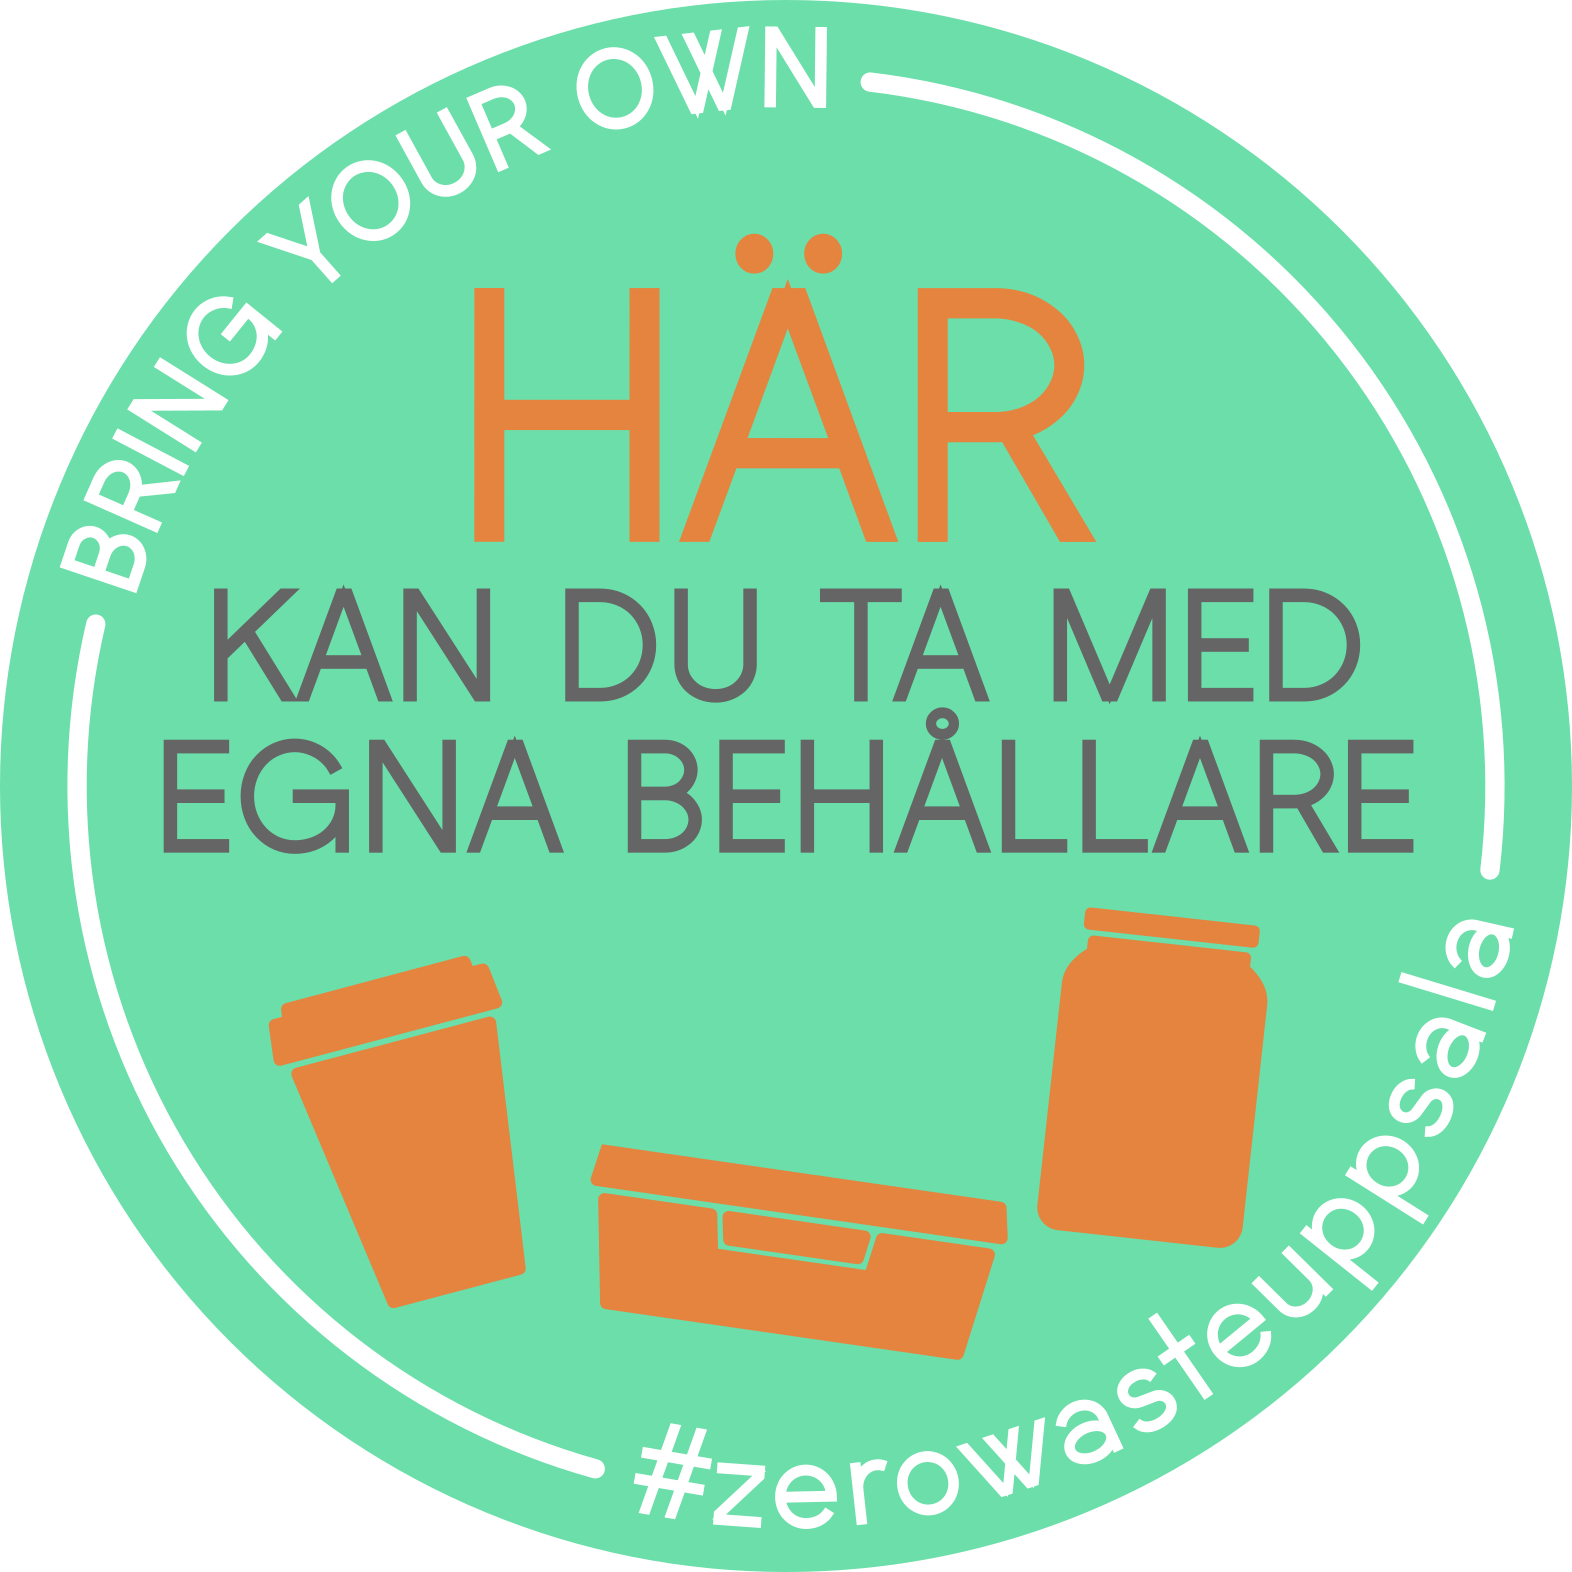 Zero Waste Uppsala sticker